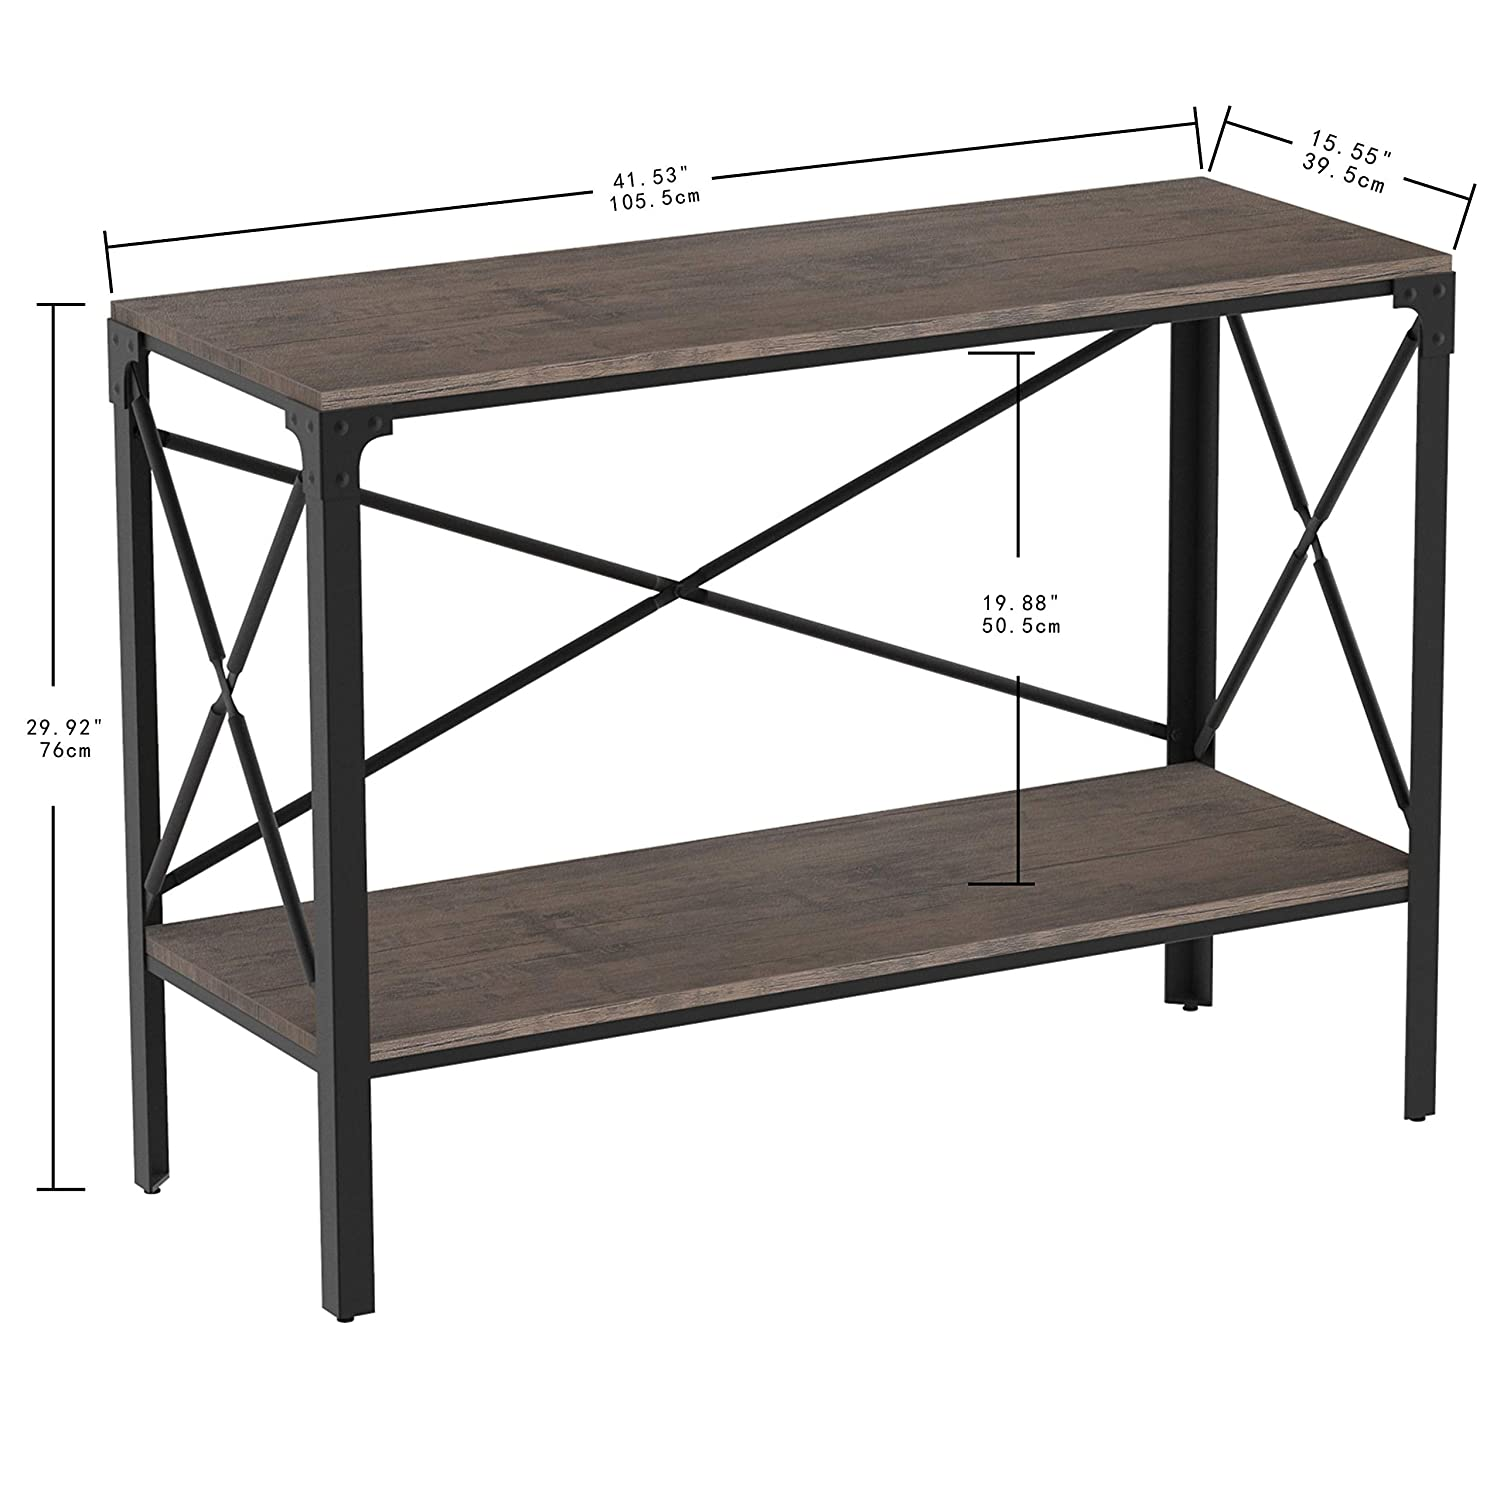 Industrial Style Dark Brown Entry Table for Entryway Living Room/£/¬Easy Assembly Entryway Table with Storage IRONCK Rustic Console Table 2 Tier